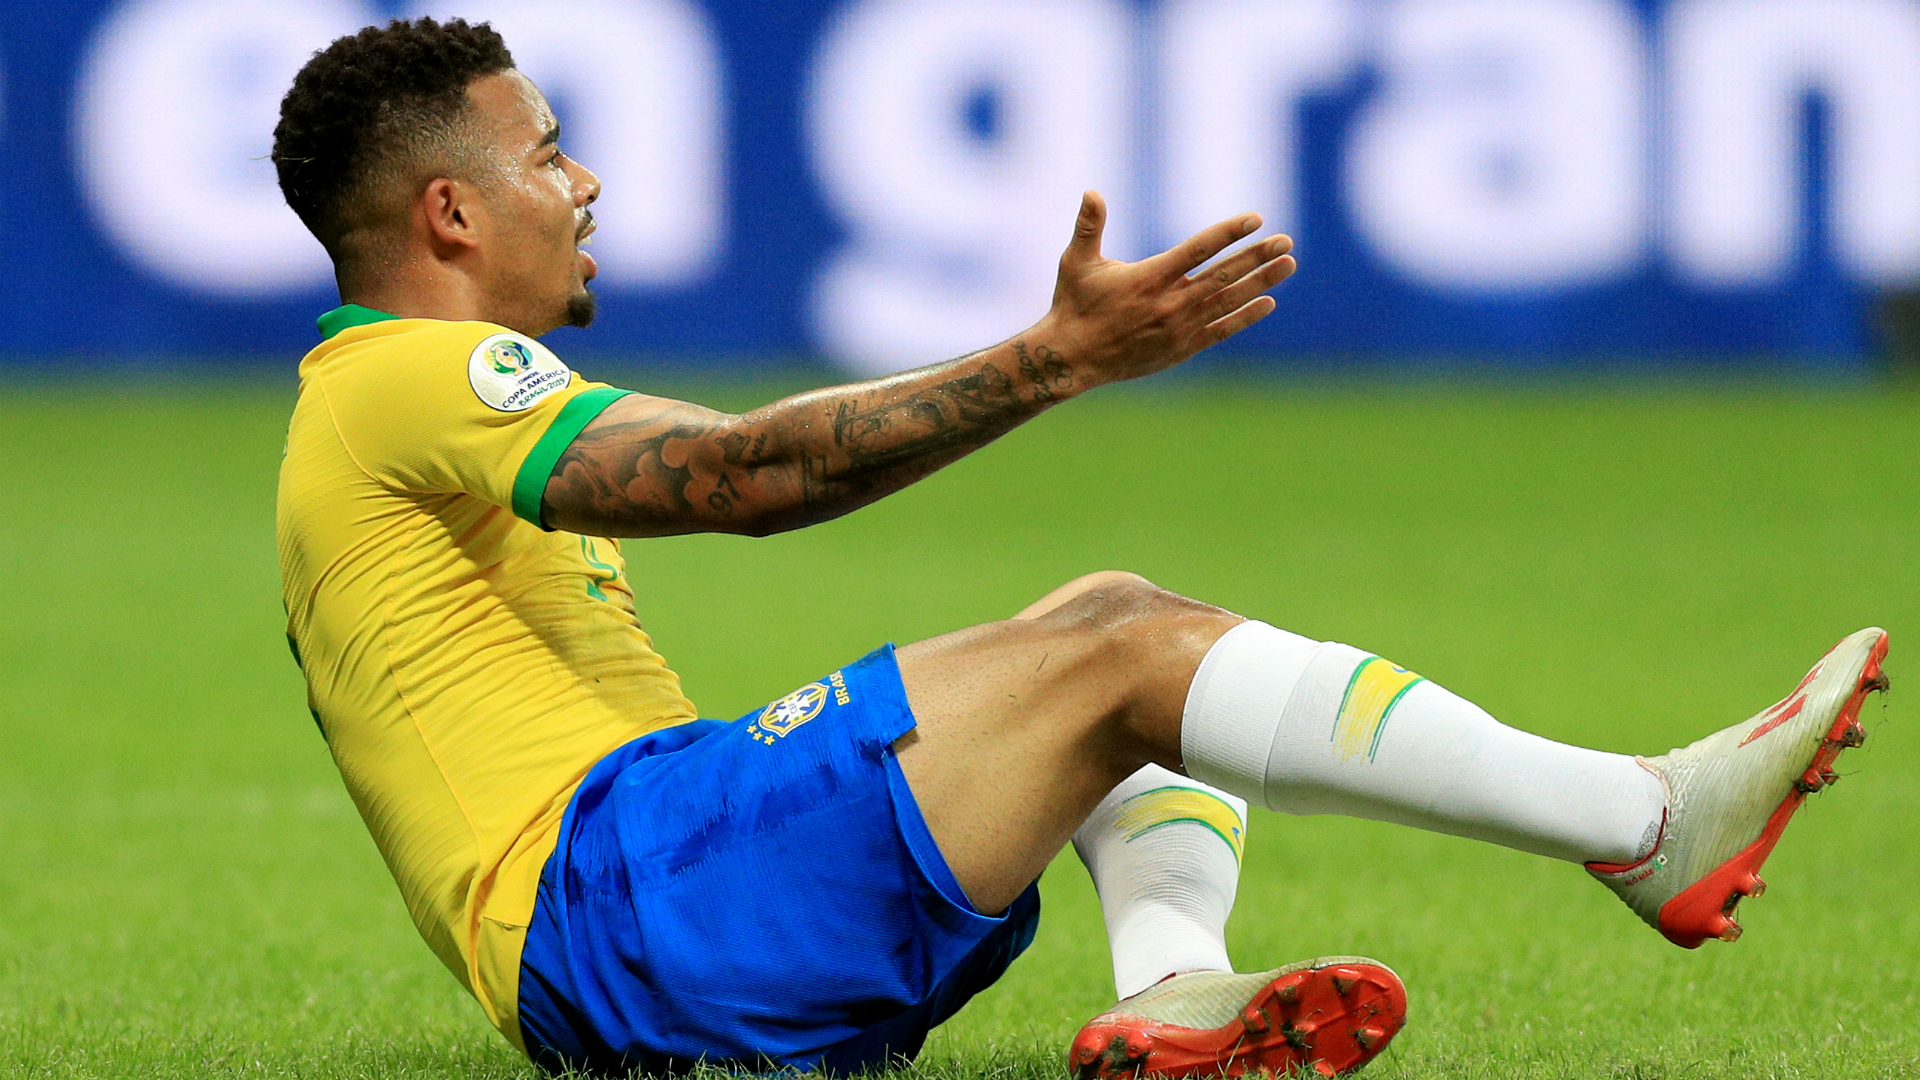 Gabriel Jesus and Philippe Coutinho had goals ruled out by the VAR on a frustrating evening for Brazil in Salvador, Bahia.